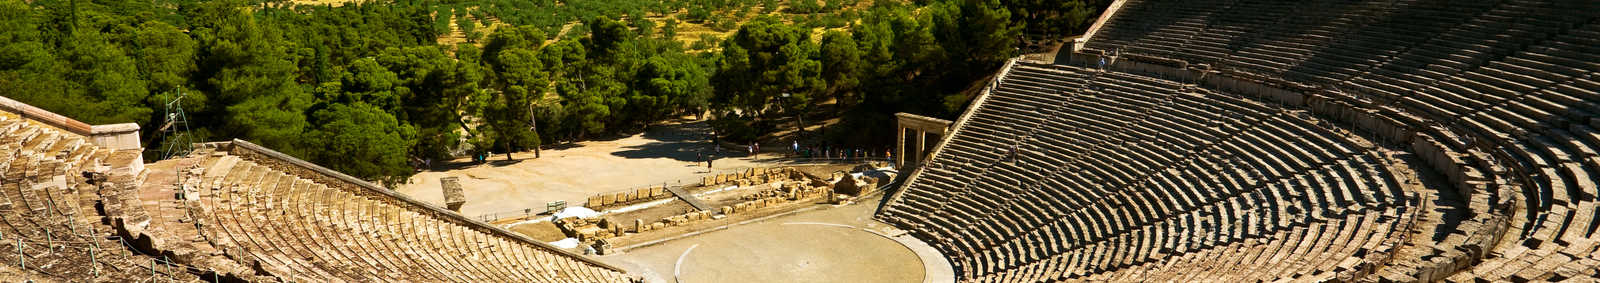 Greece. Ancient Theatre in Epidaurus (also Epidauros, Epidavros) built in 340 BC.